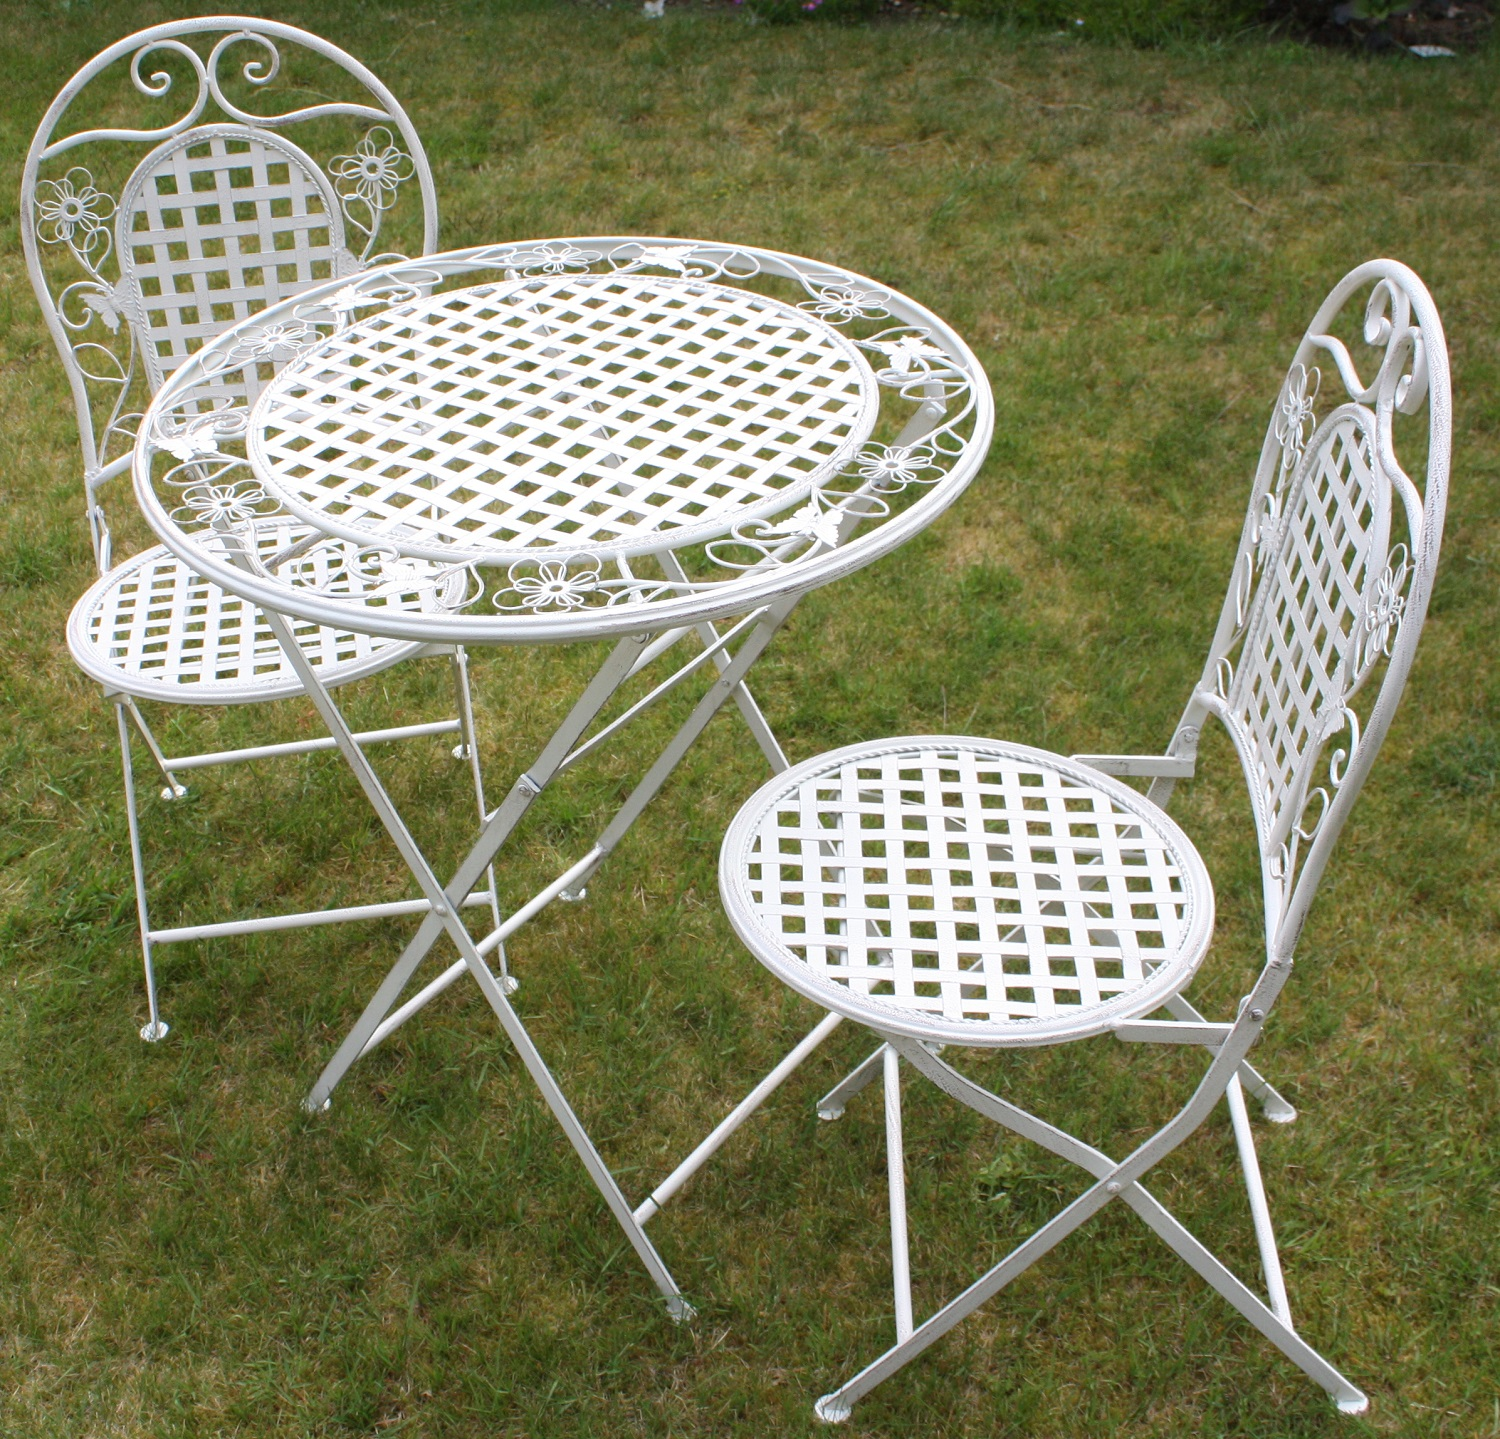 White floral outdoor folding metal round table and chairs for Outdoor patio table and chairs